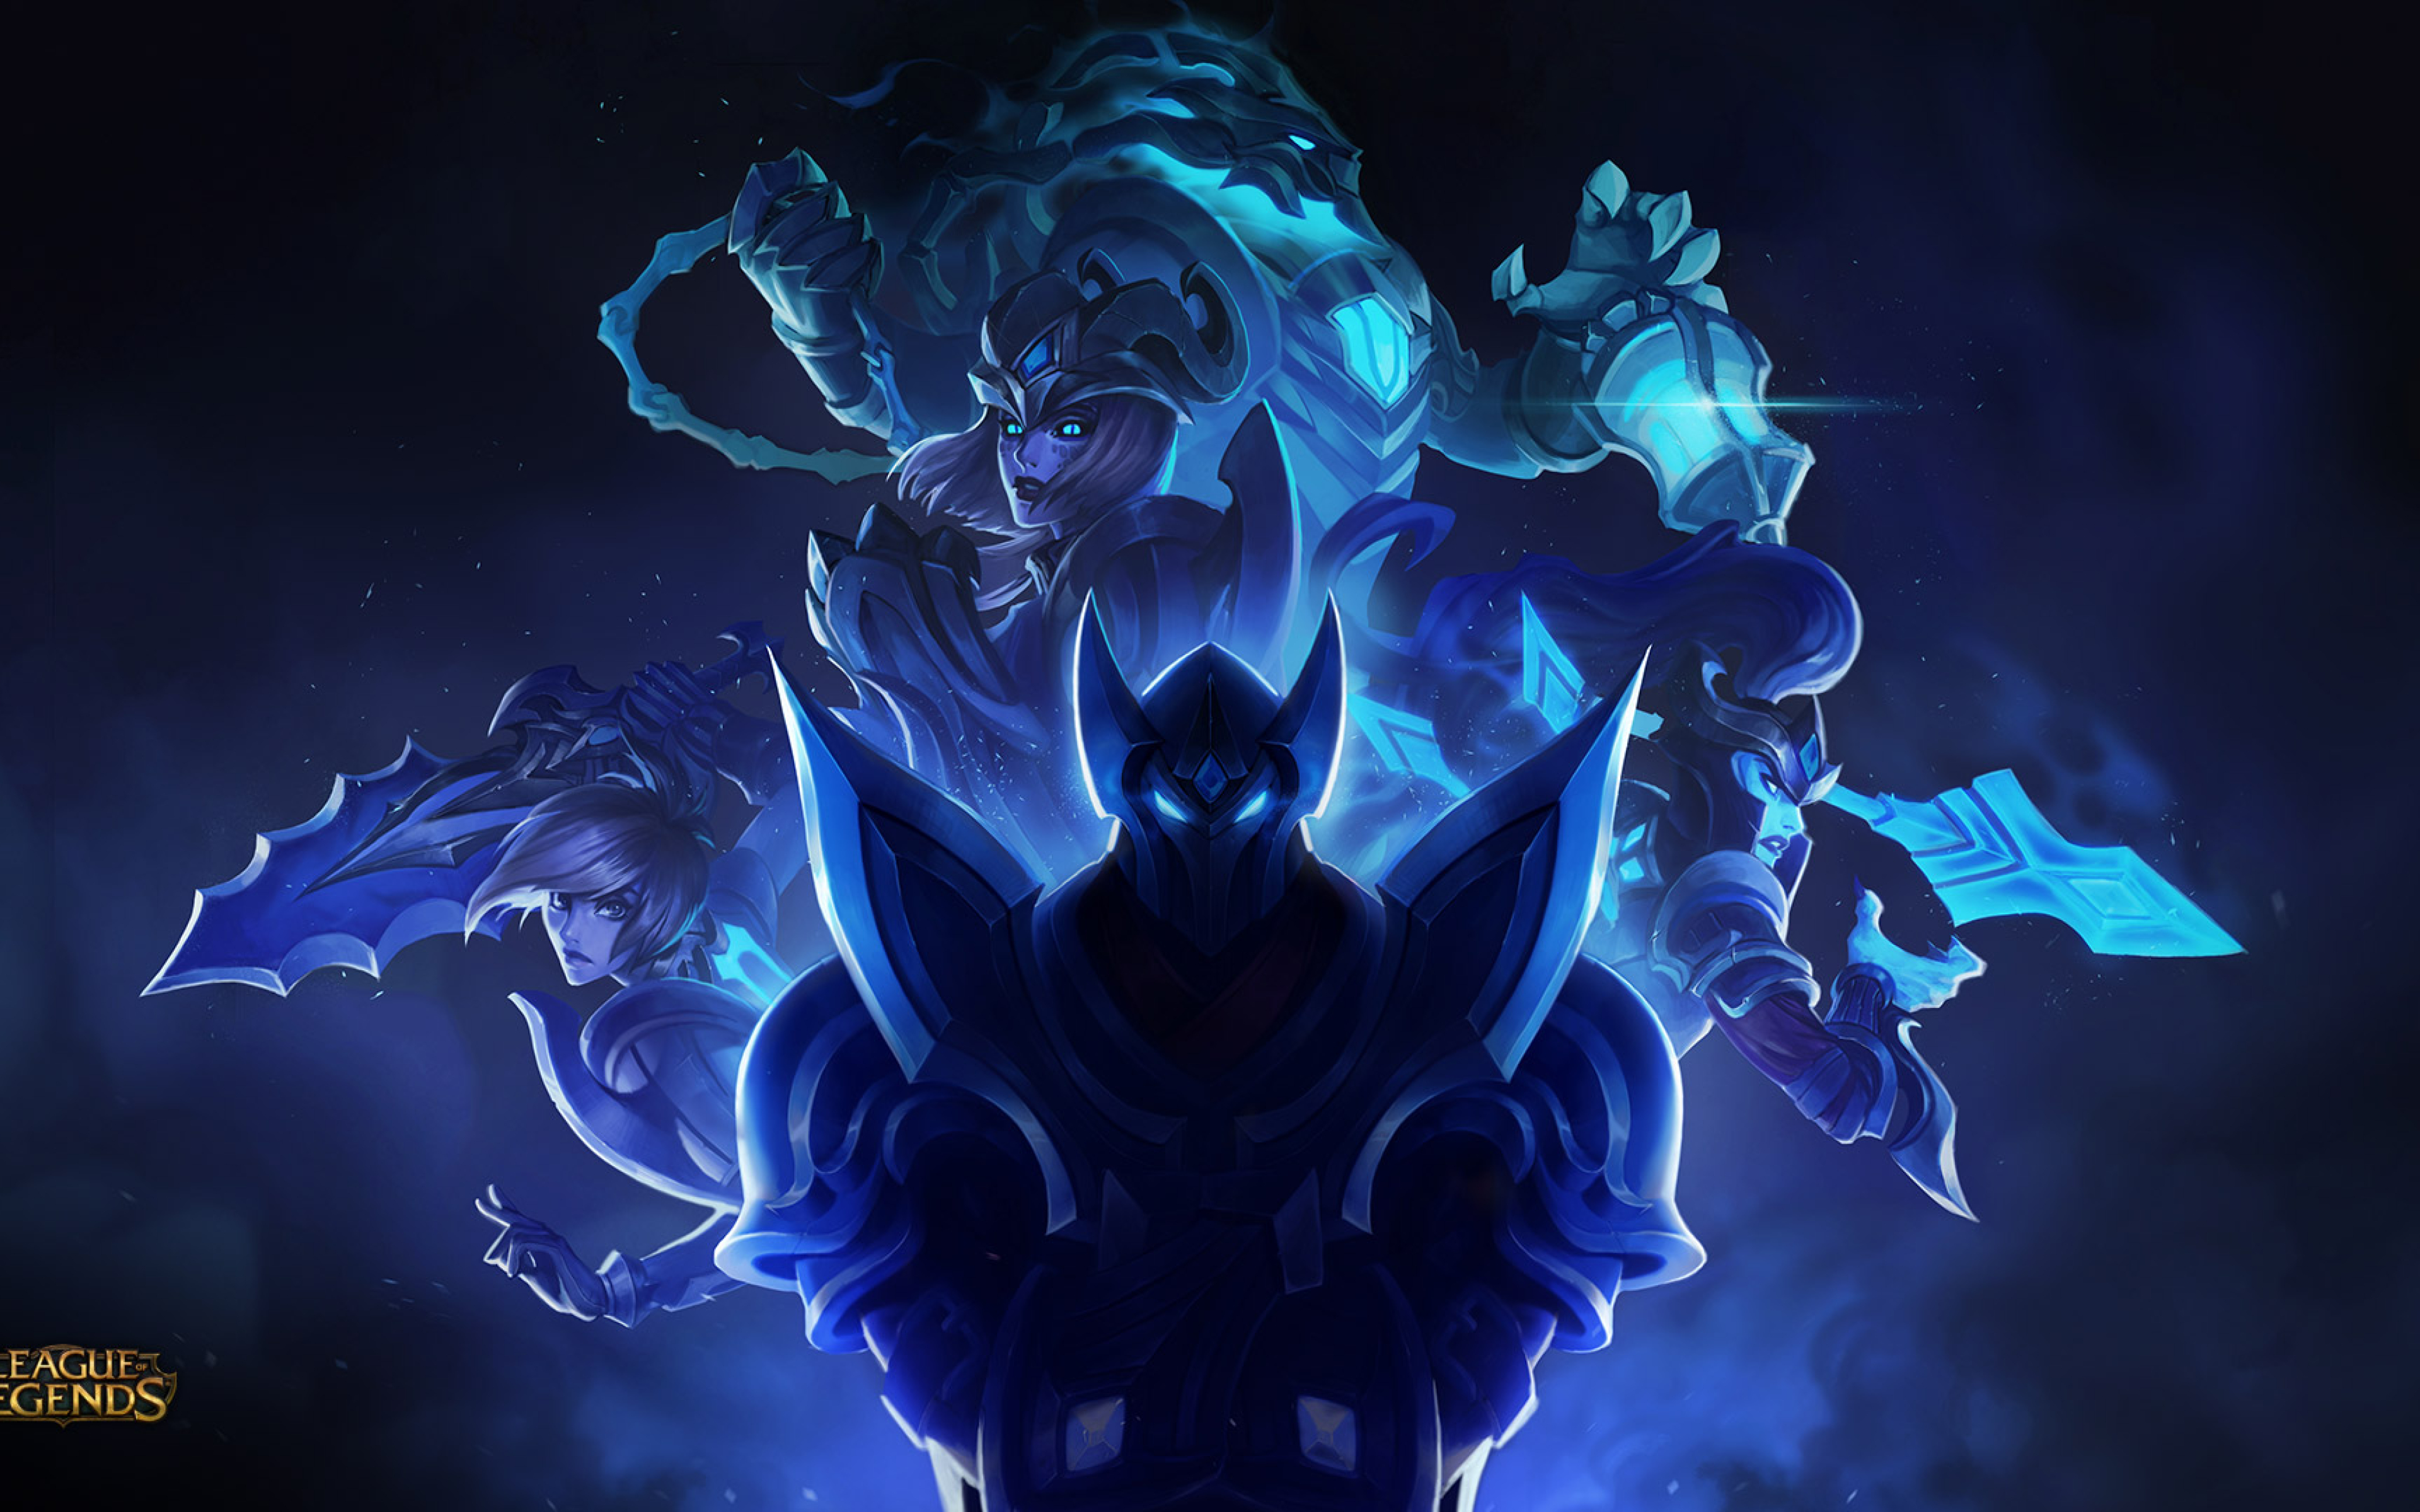 3840x2400 League Of Legends Zed Riven Shyvana And Thresh Uhd 4k 3840x2400 Resolution Wallpaper Hd Games 4k Wallpapers Images Photos And Background